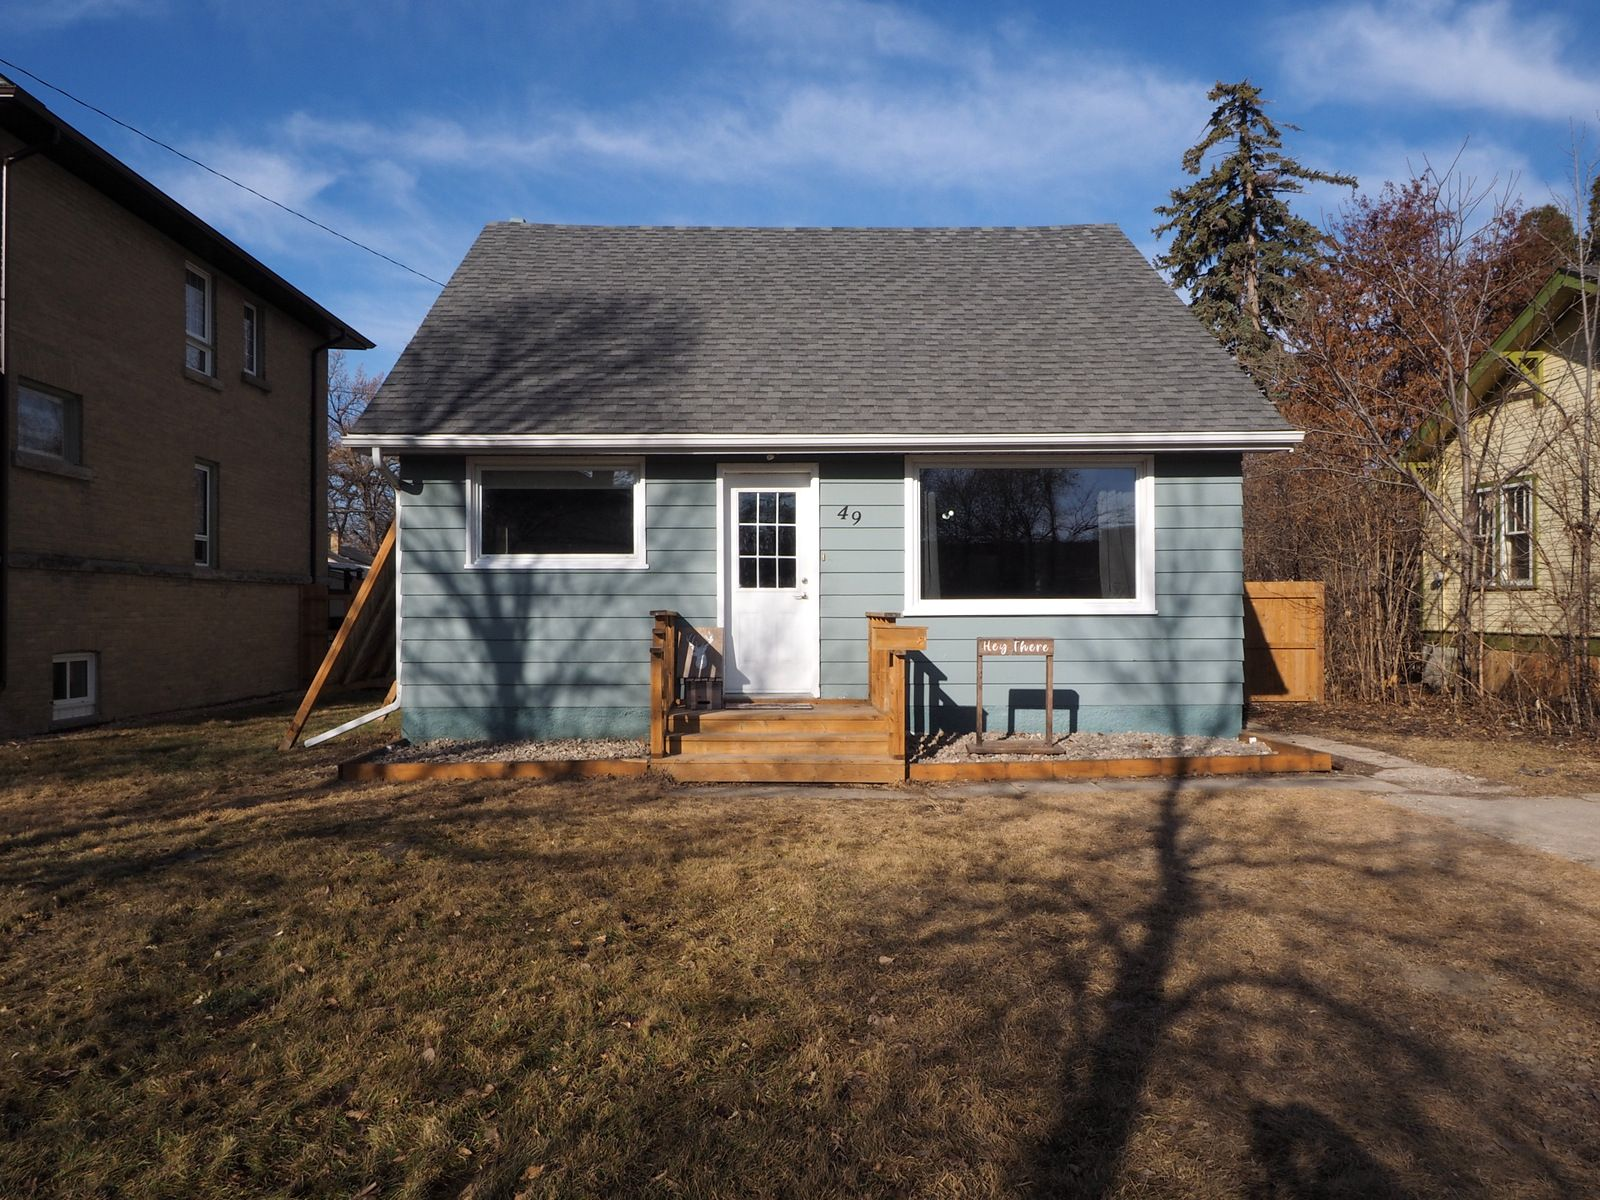 Main Photo: 49 Strathcona Road in Portage la Prairie: House for sale : MLS®# 202105536